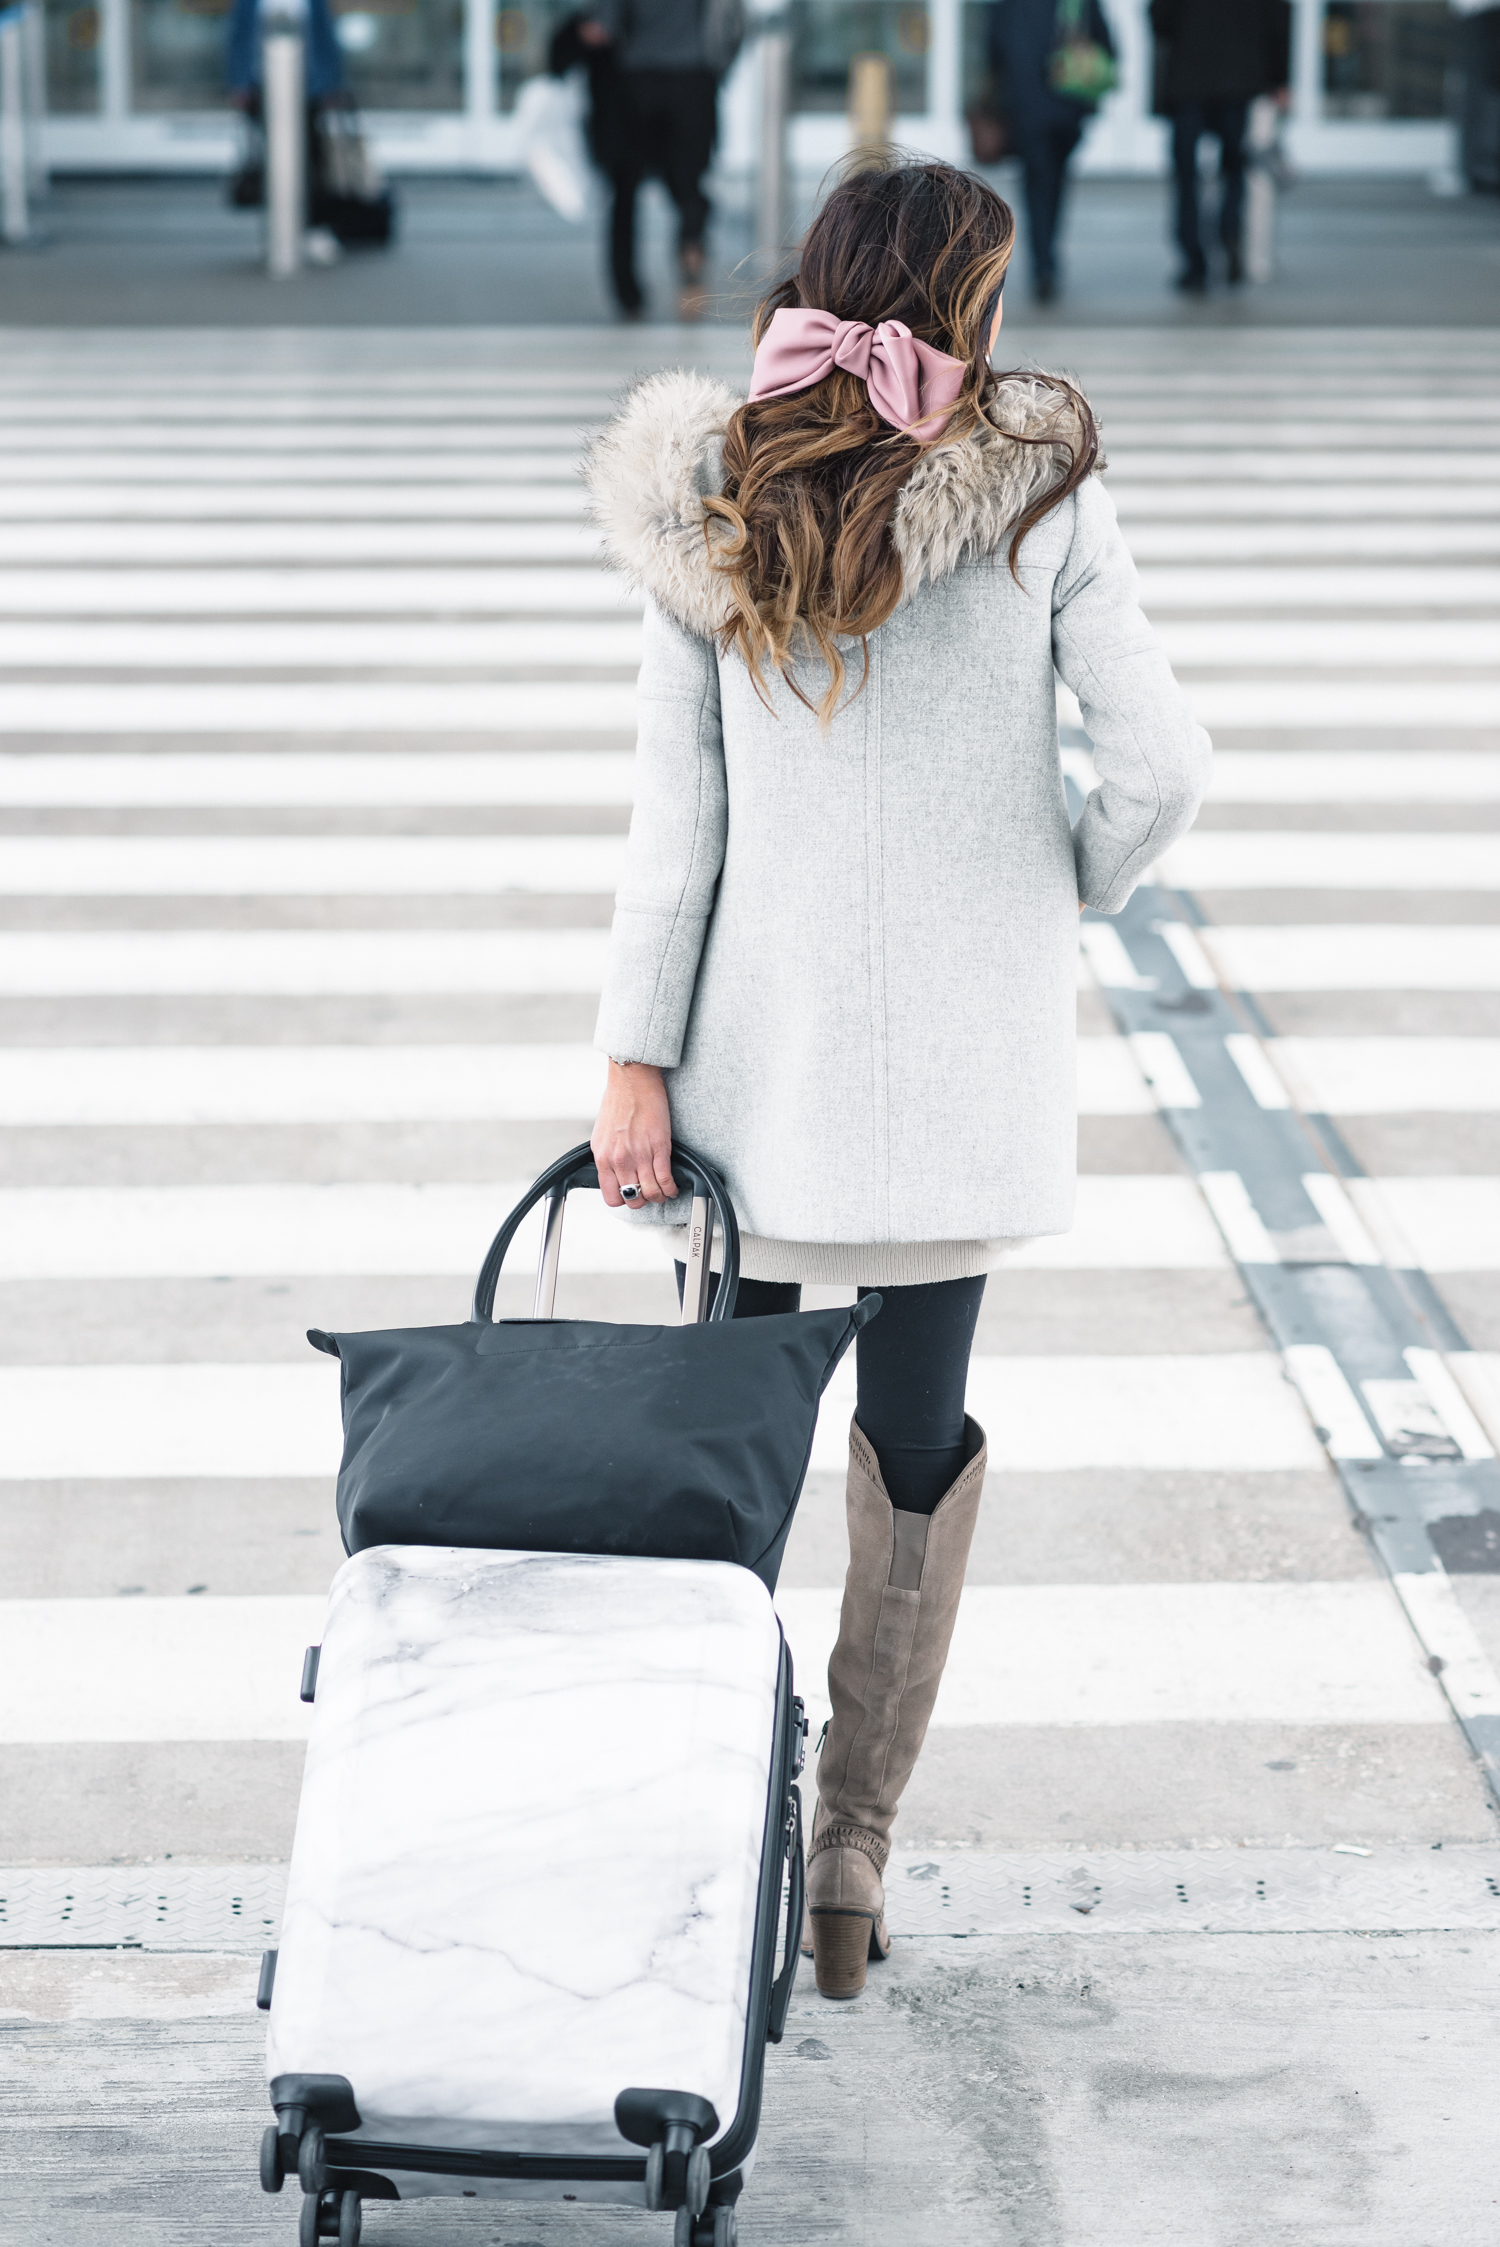 holiday travel, tips for holiday travel, holiday travel tips, sequins and things travel, sequins and things, sequins & things travel, sequins & things, alyson haley, alyson haley blogger, thanksgiving travel, traveling at christmas, christmas travel, how to survive holiday travel, holiday travel survival tips, j.crew chateau parka, j.crew coat, j.crew, free people hair bow, over the knee boots, longchamp tote, marble suitcase, marble luggage, calpak marble luggage, calpak luggage